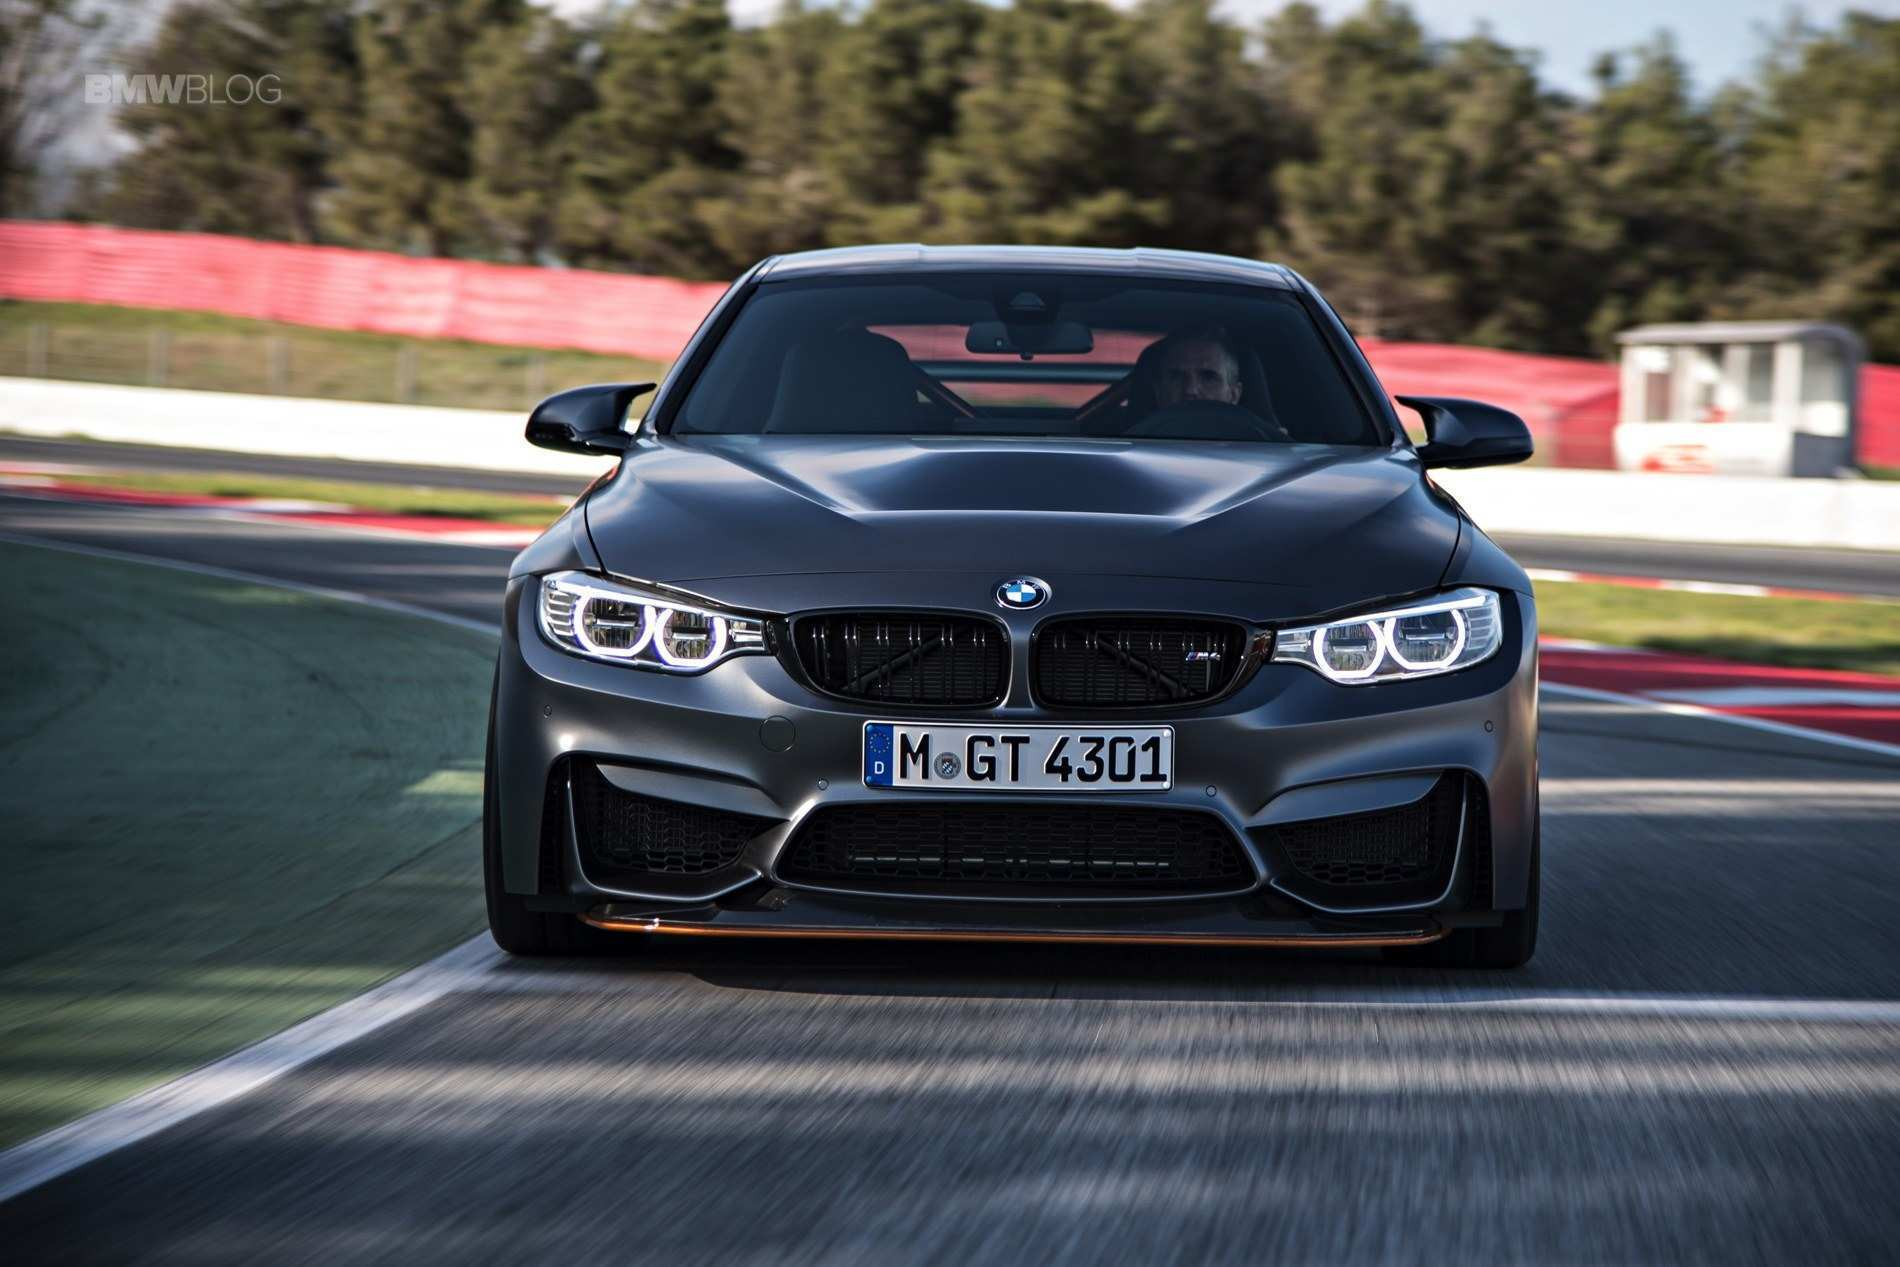 38 All New 2020 BMW M4 Gts Rumors for 2020 BMW M4 Gts